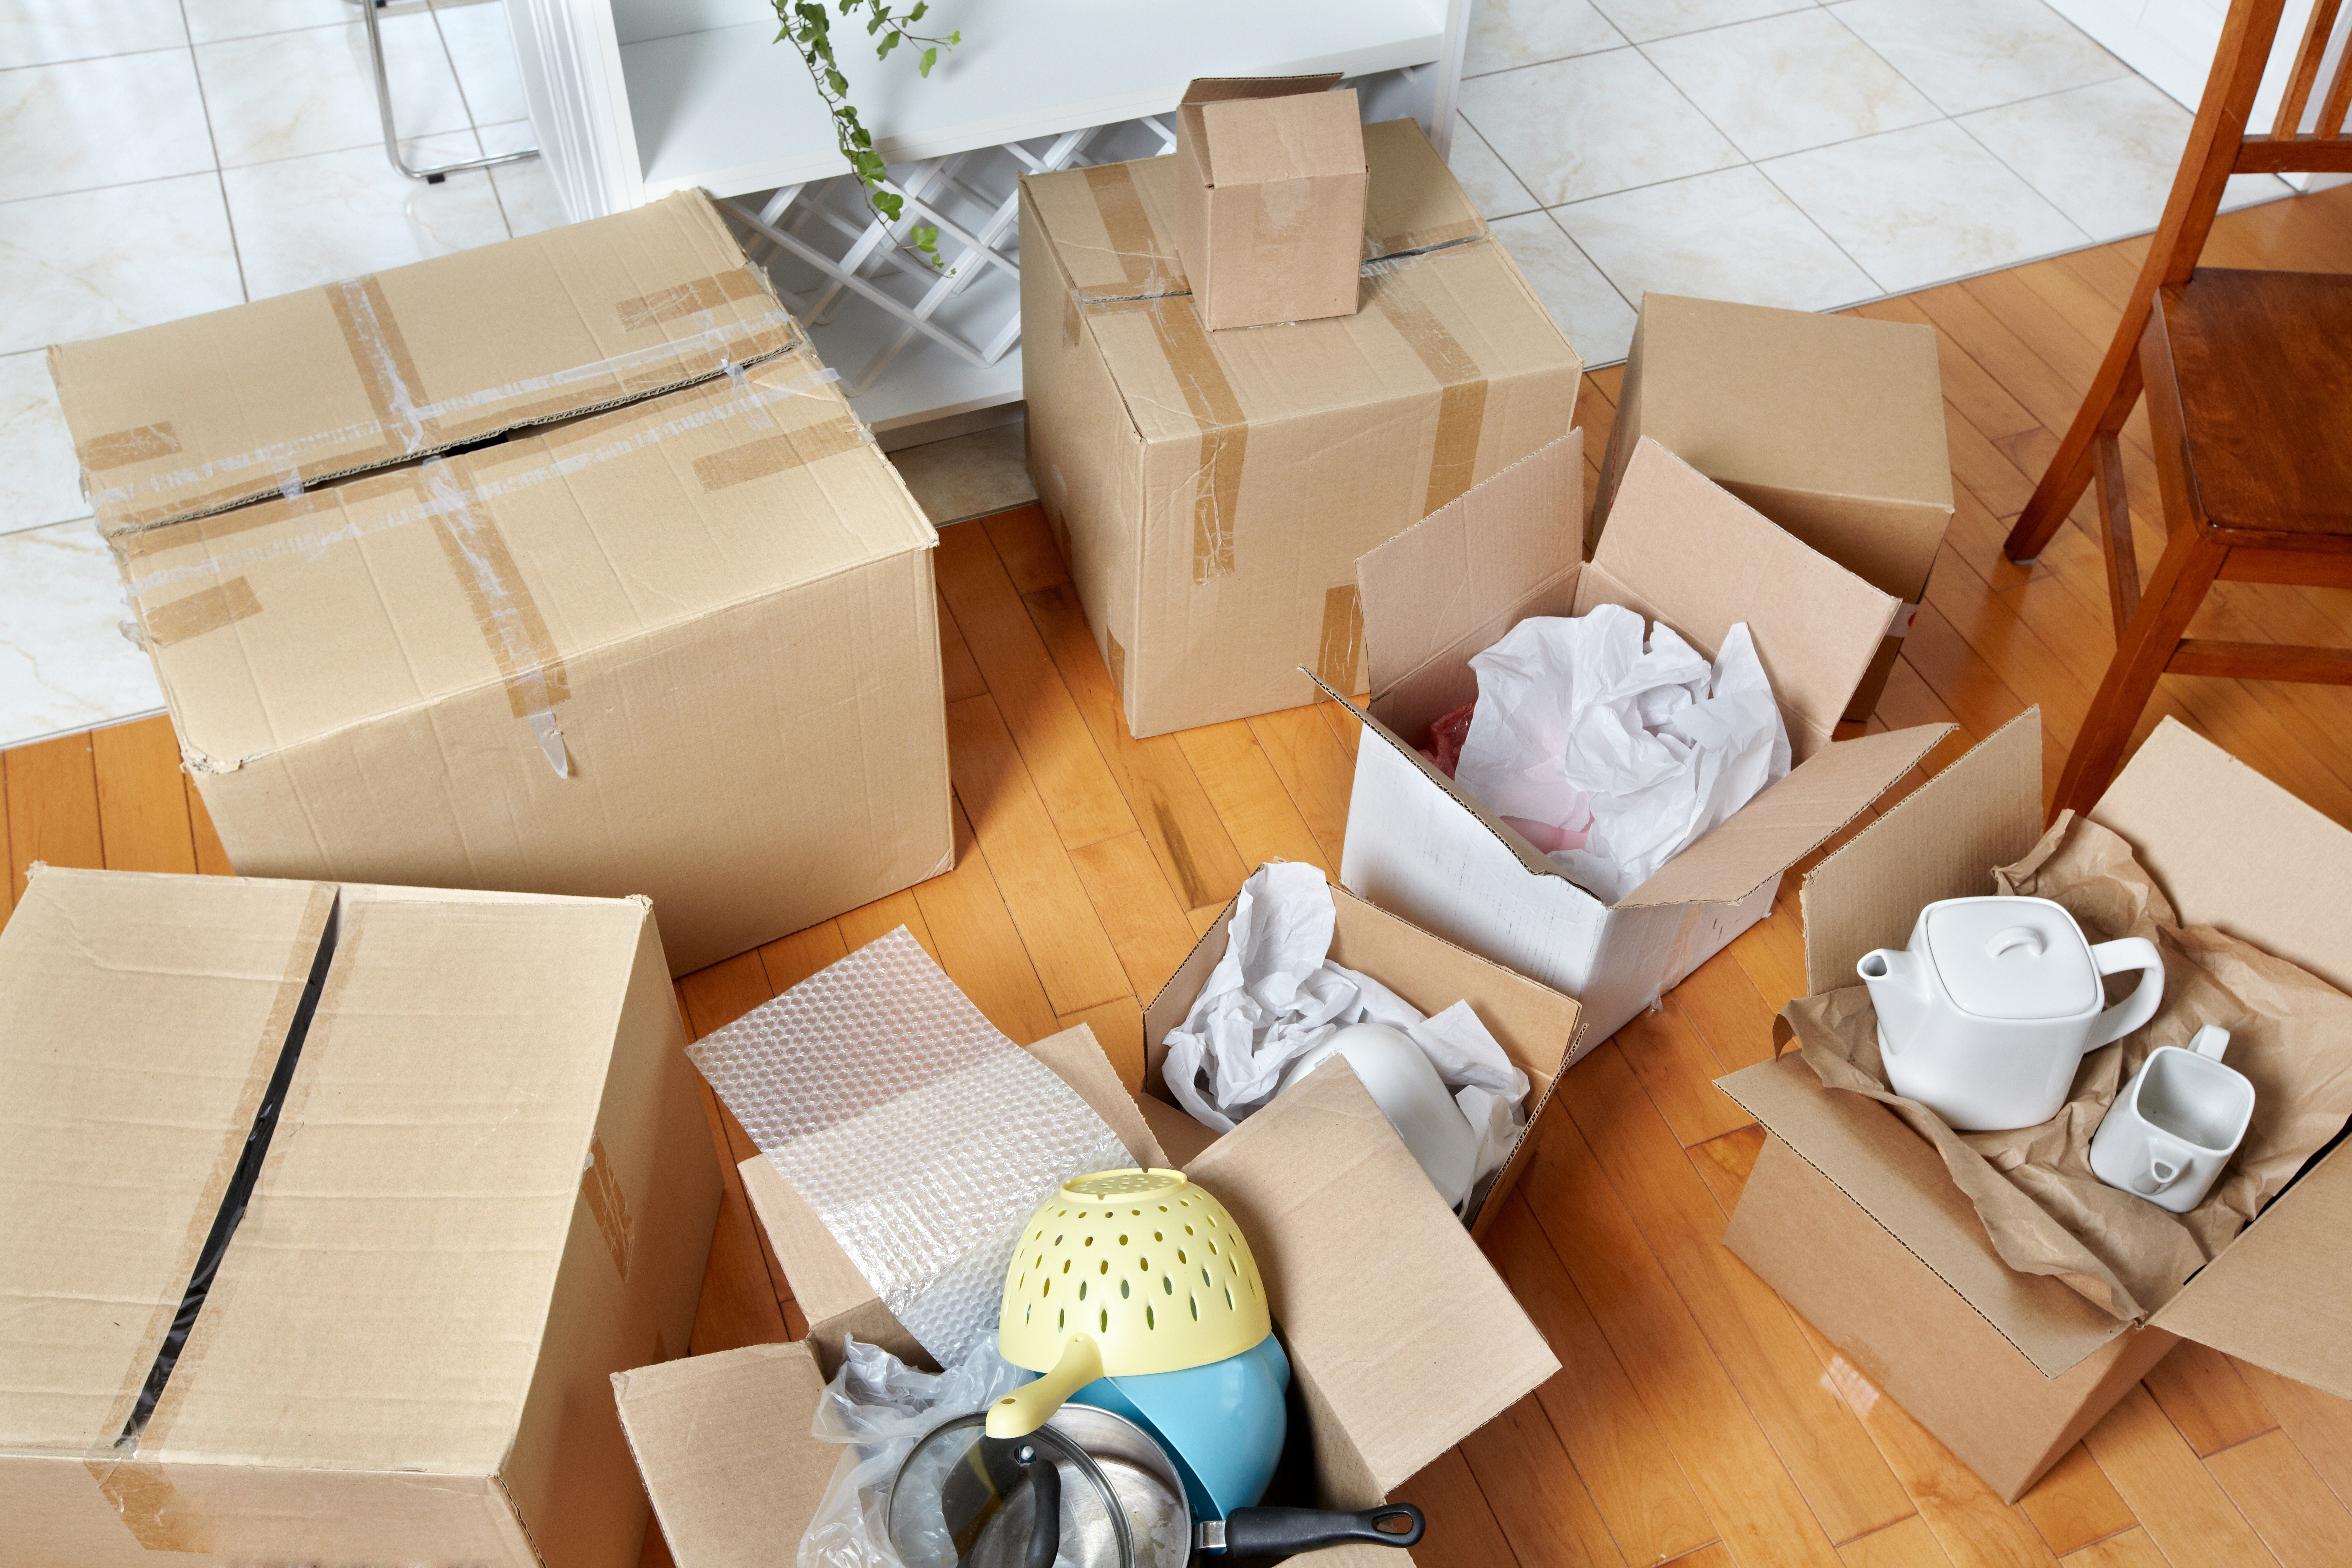 messy_moving_boxes